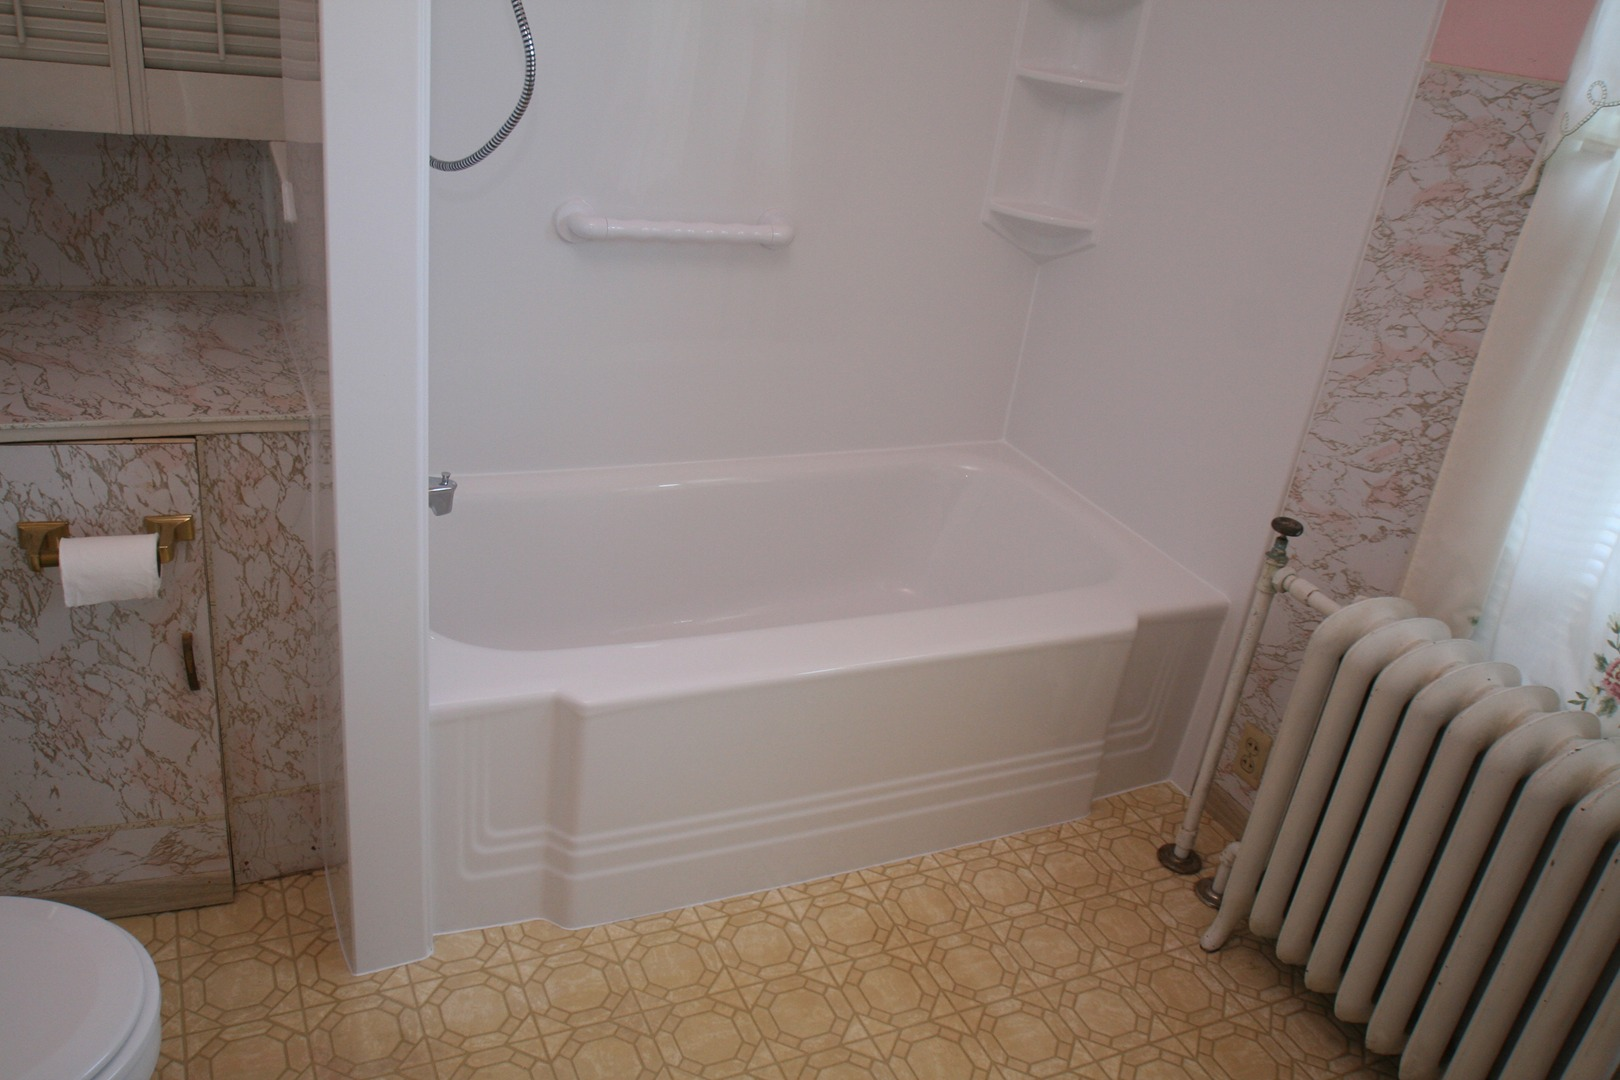 Acrylic Bathtub Wall And Shower Liners Walkthru Tub Inserts - Bathroom tub inserts